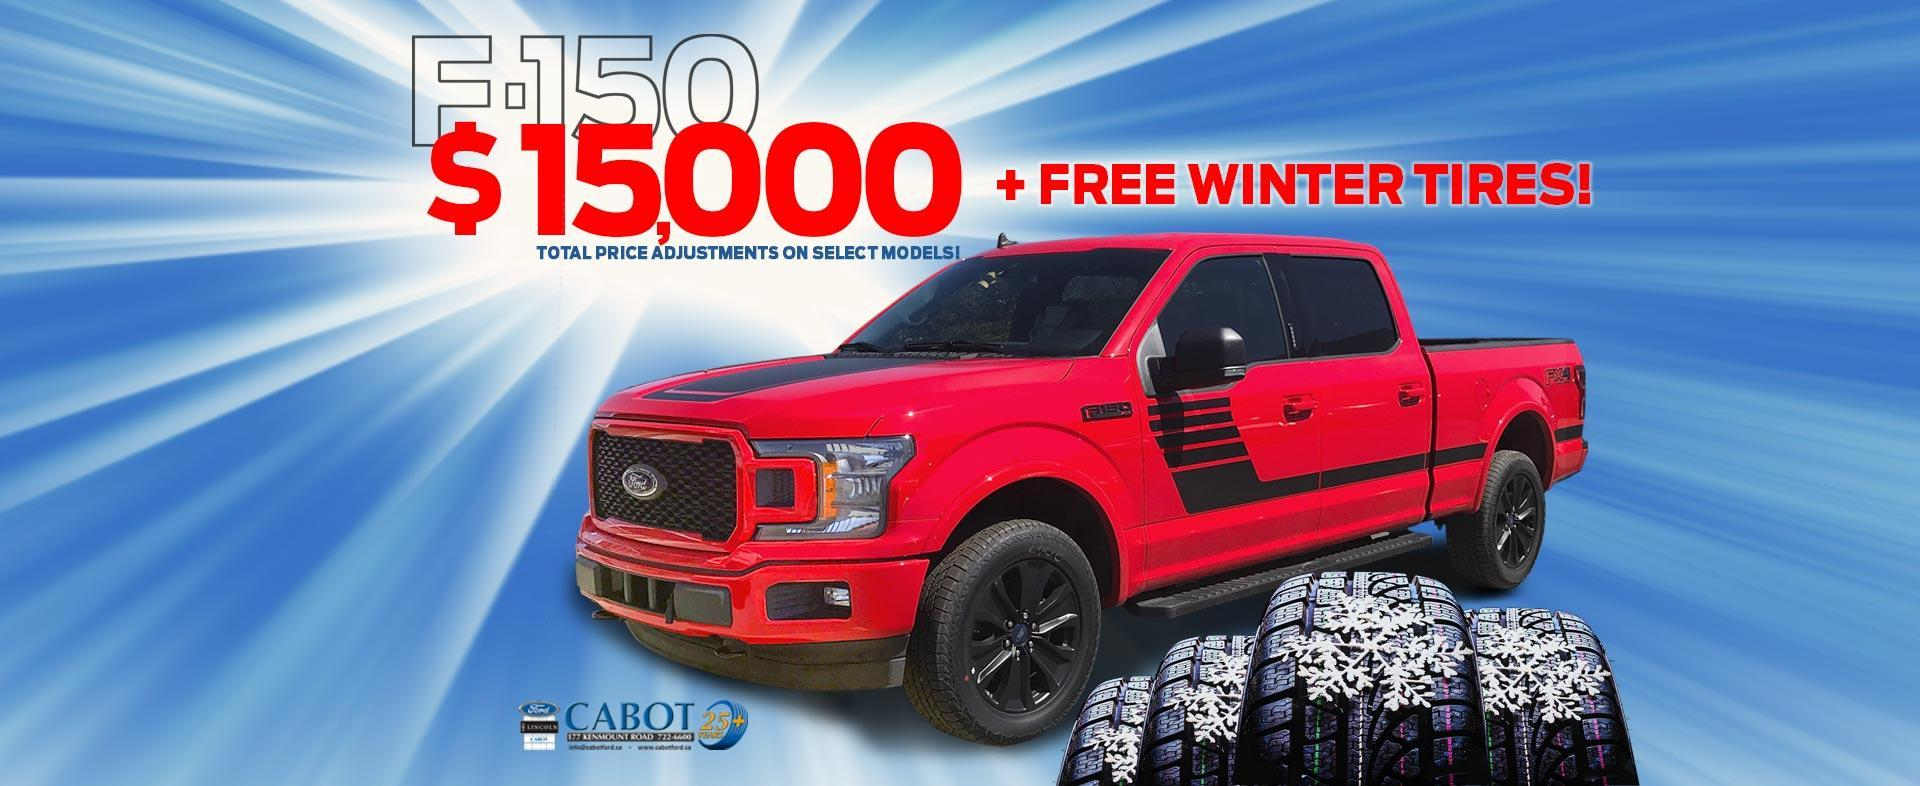 OVER $15,000 IN TOTAL PRICE ADJUSTMENTS on select F-150 models! FREE WINTER TIRES on ALL NEW VEHICLES!